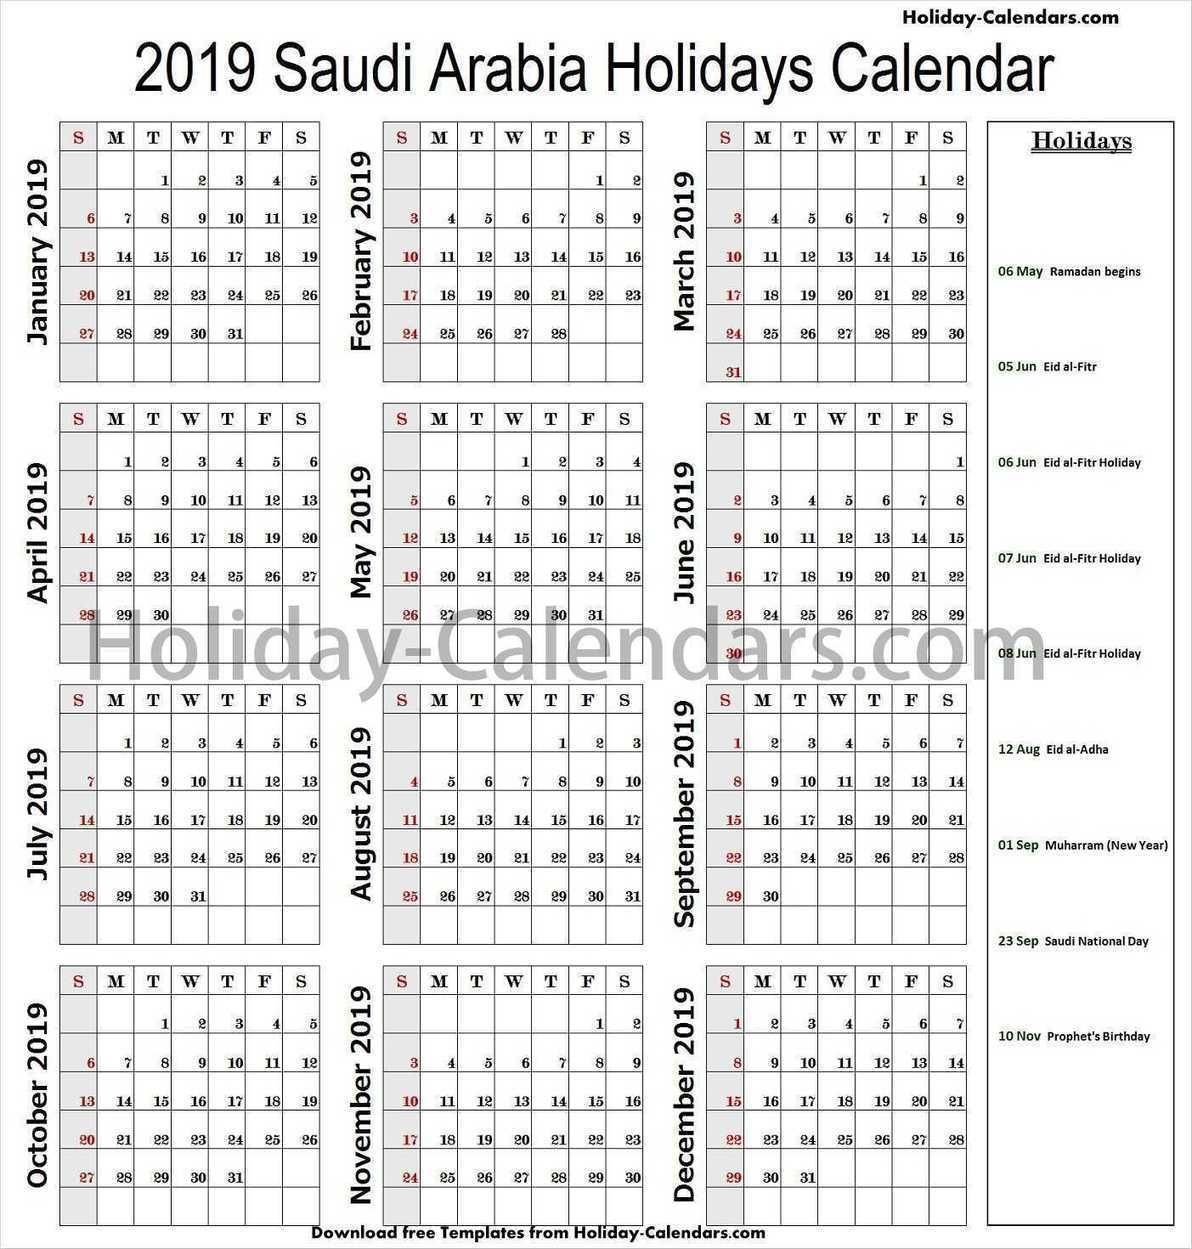 Pin By Holiday Calendars On Holidays Calendar 2019 School Holidays Holiday Calendar Happy Islamic New Year